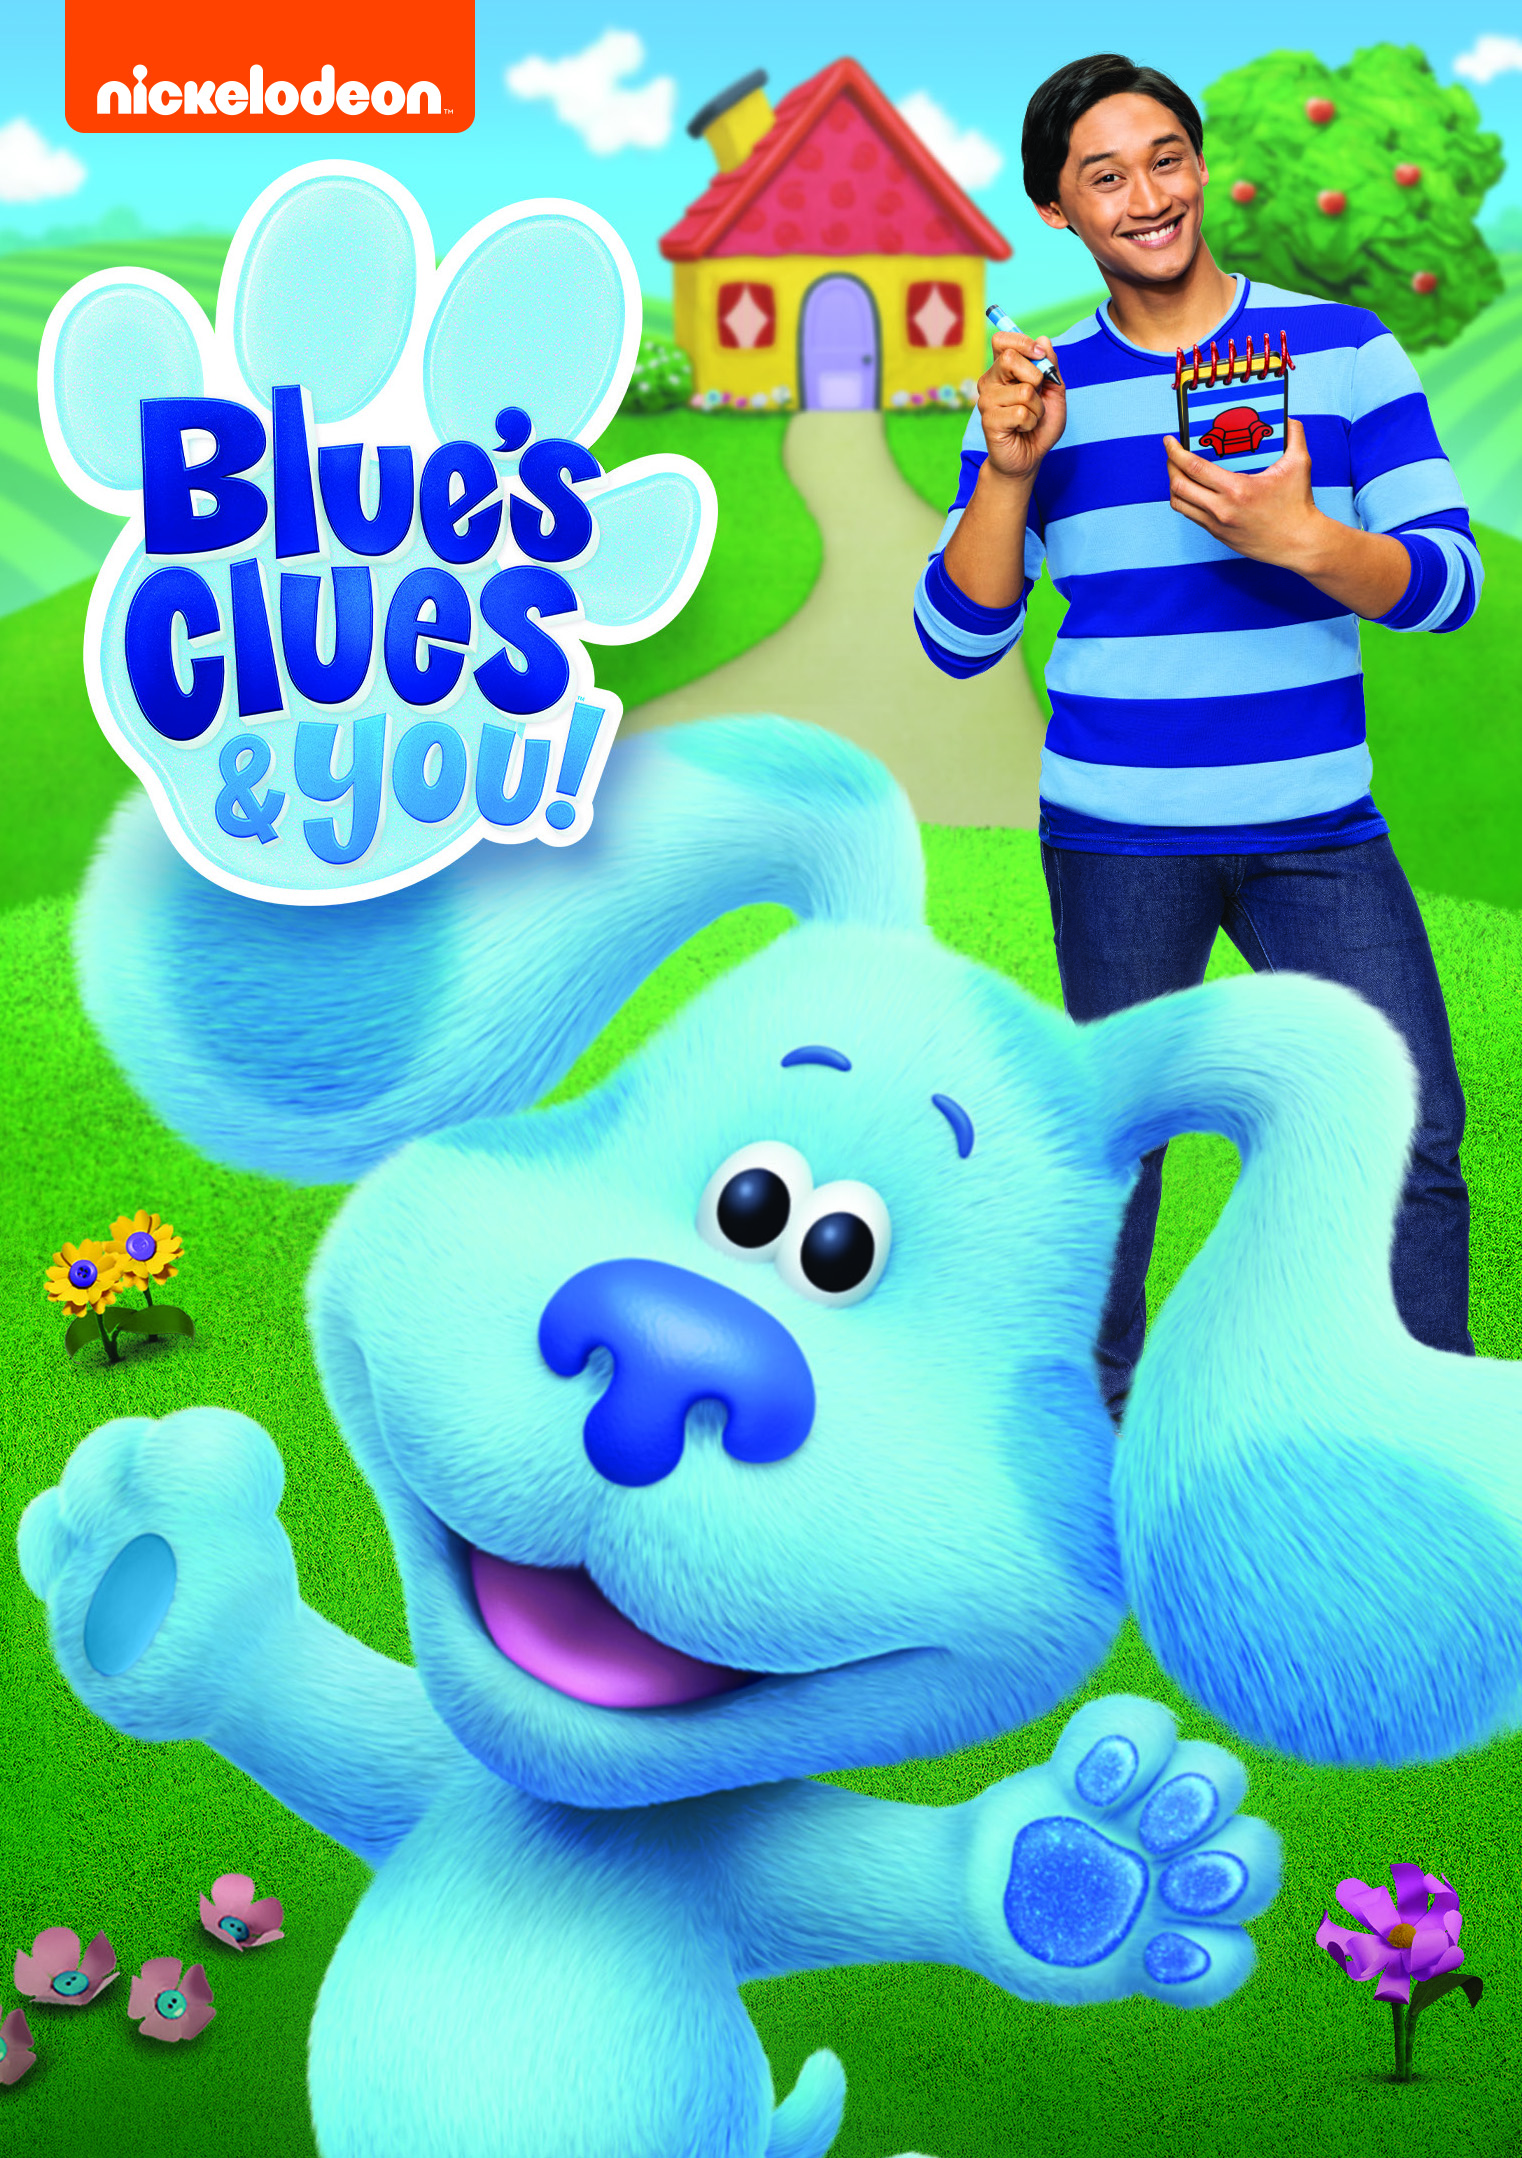 Nickelodeon's hit interactive preschool series Blue's Clues & You! will skidoo onto DVD for the first time on June 2, featuring four exciting episodes from the show's debut season. Available exclusively at Walmart June 2, 2020.